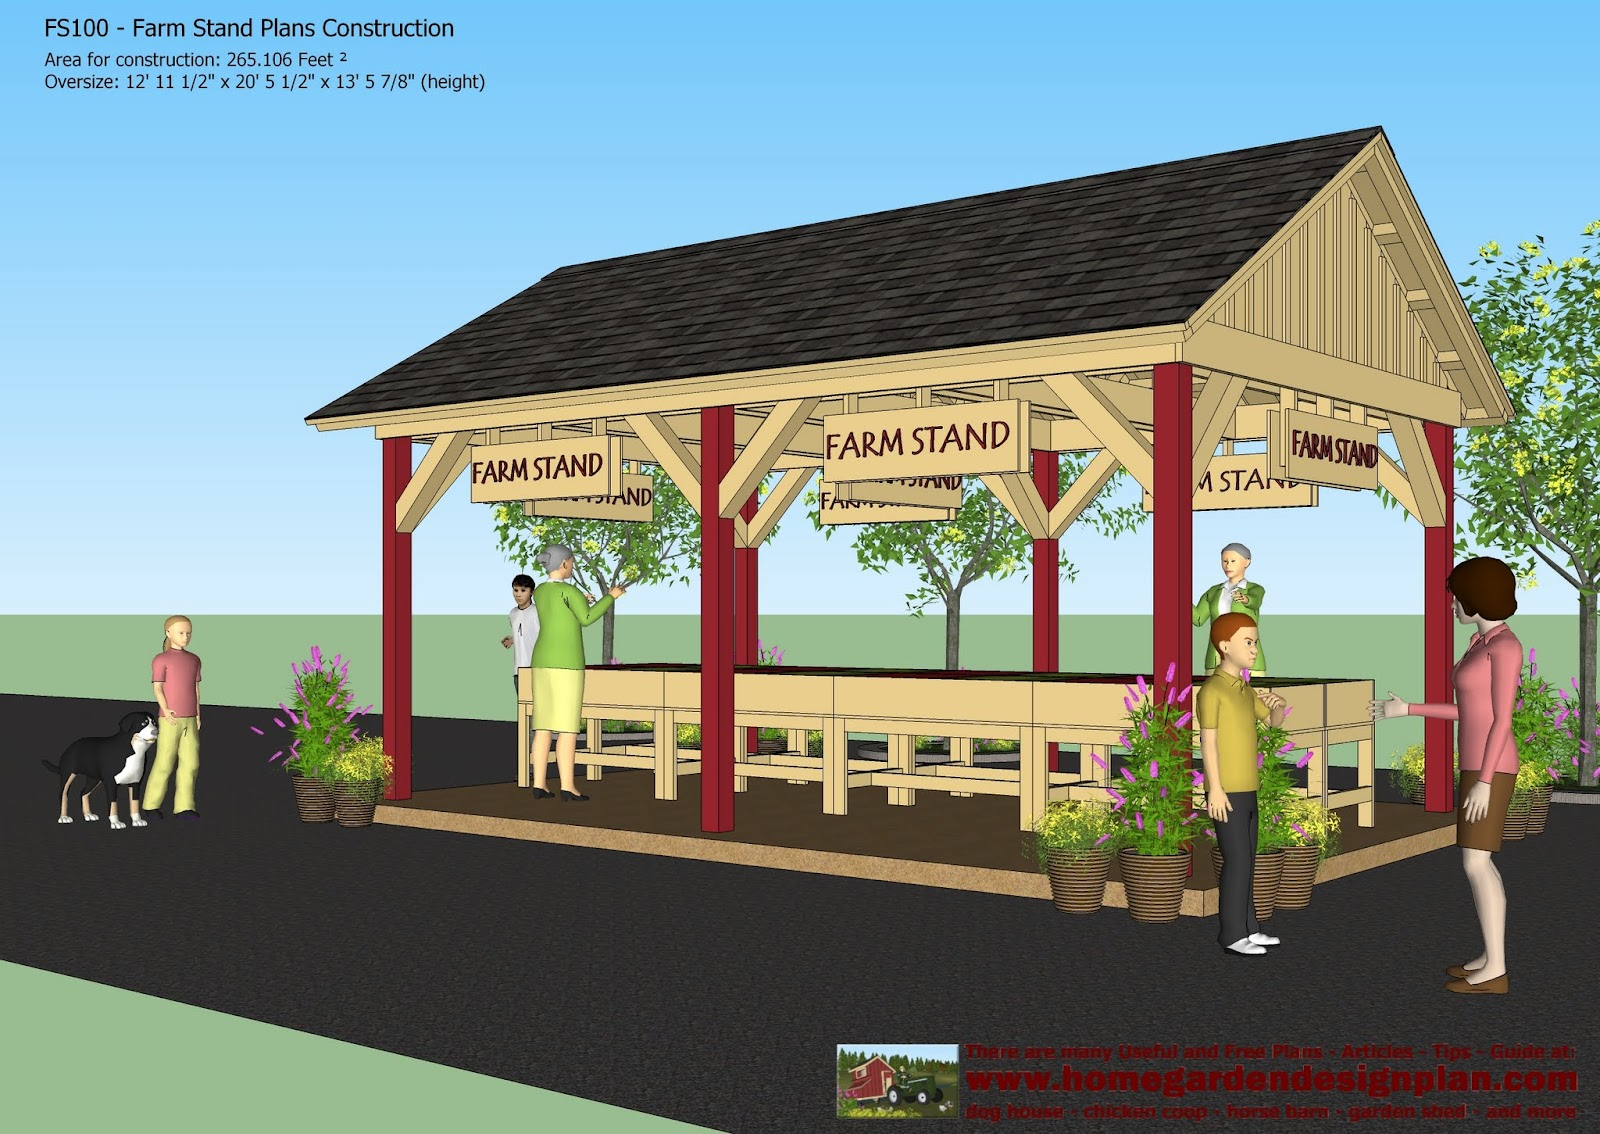 Home garden plans fs100 farm stand plans construction for Farm house construction plans